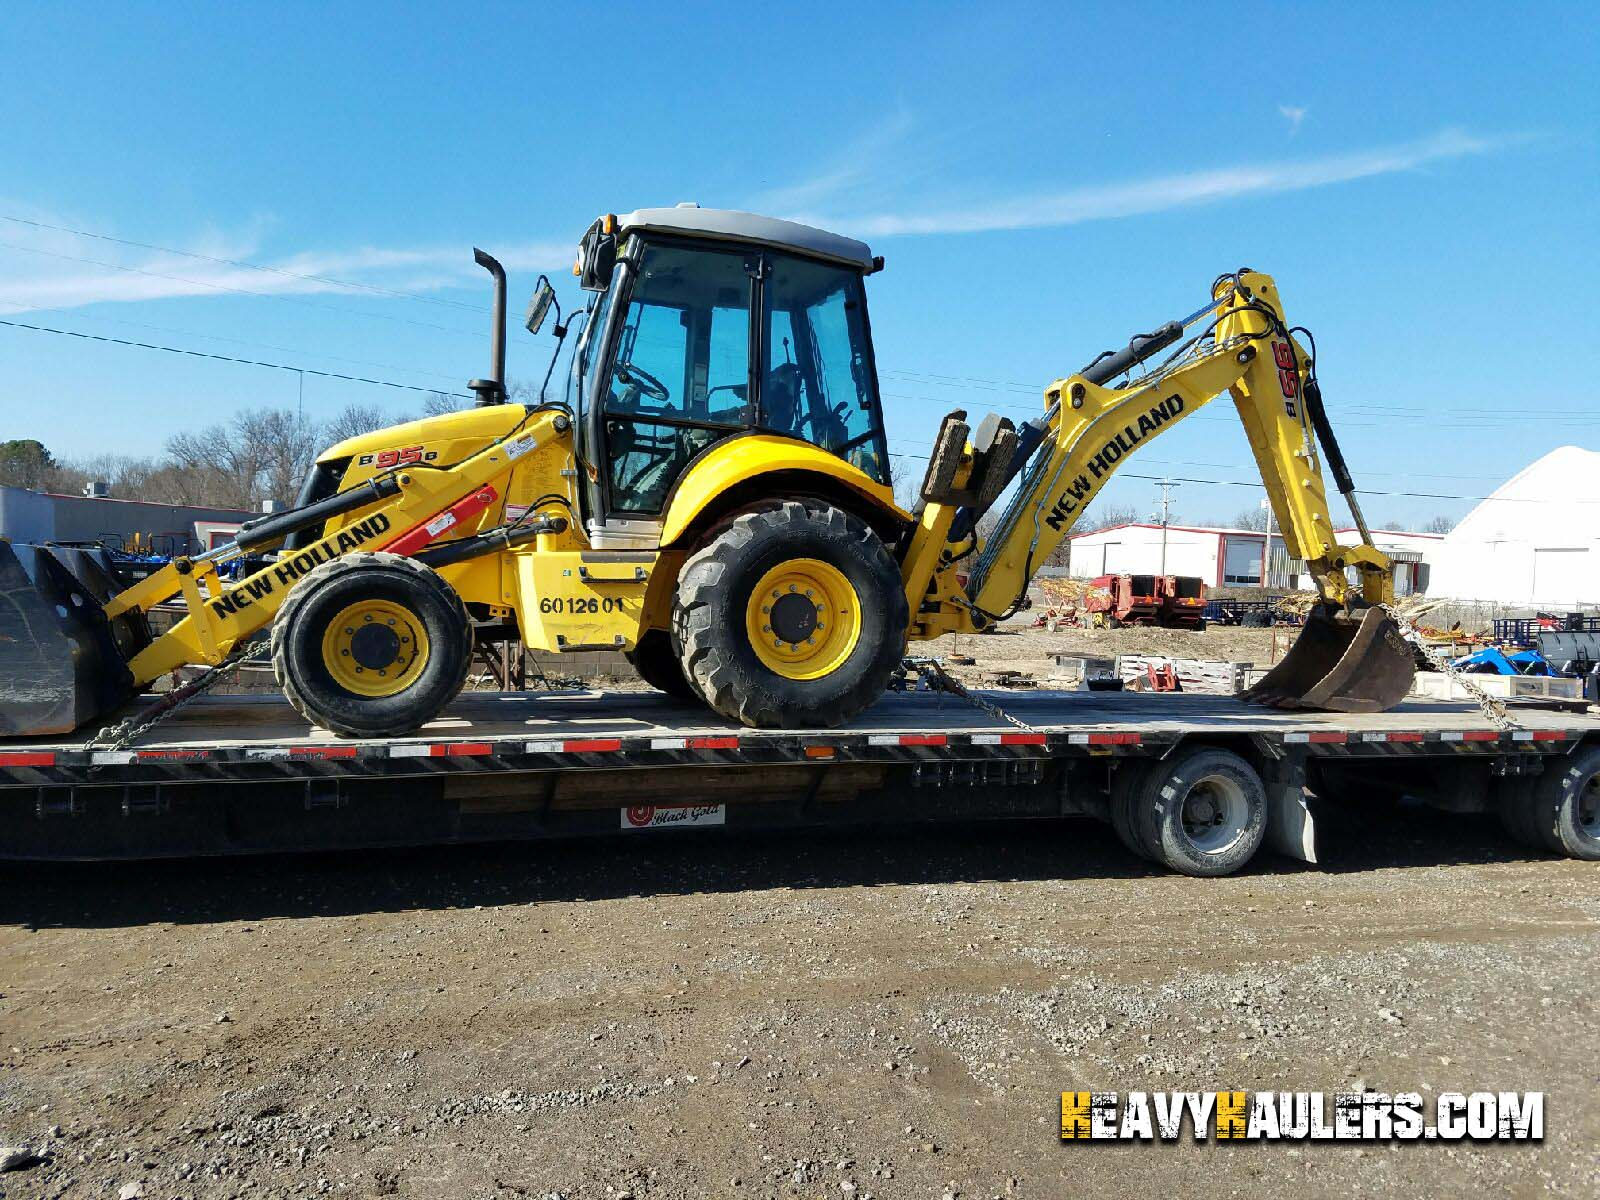 Backhoe Shipping Services Heavy Haulers 800 908 6206